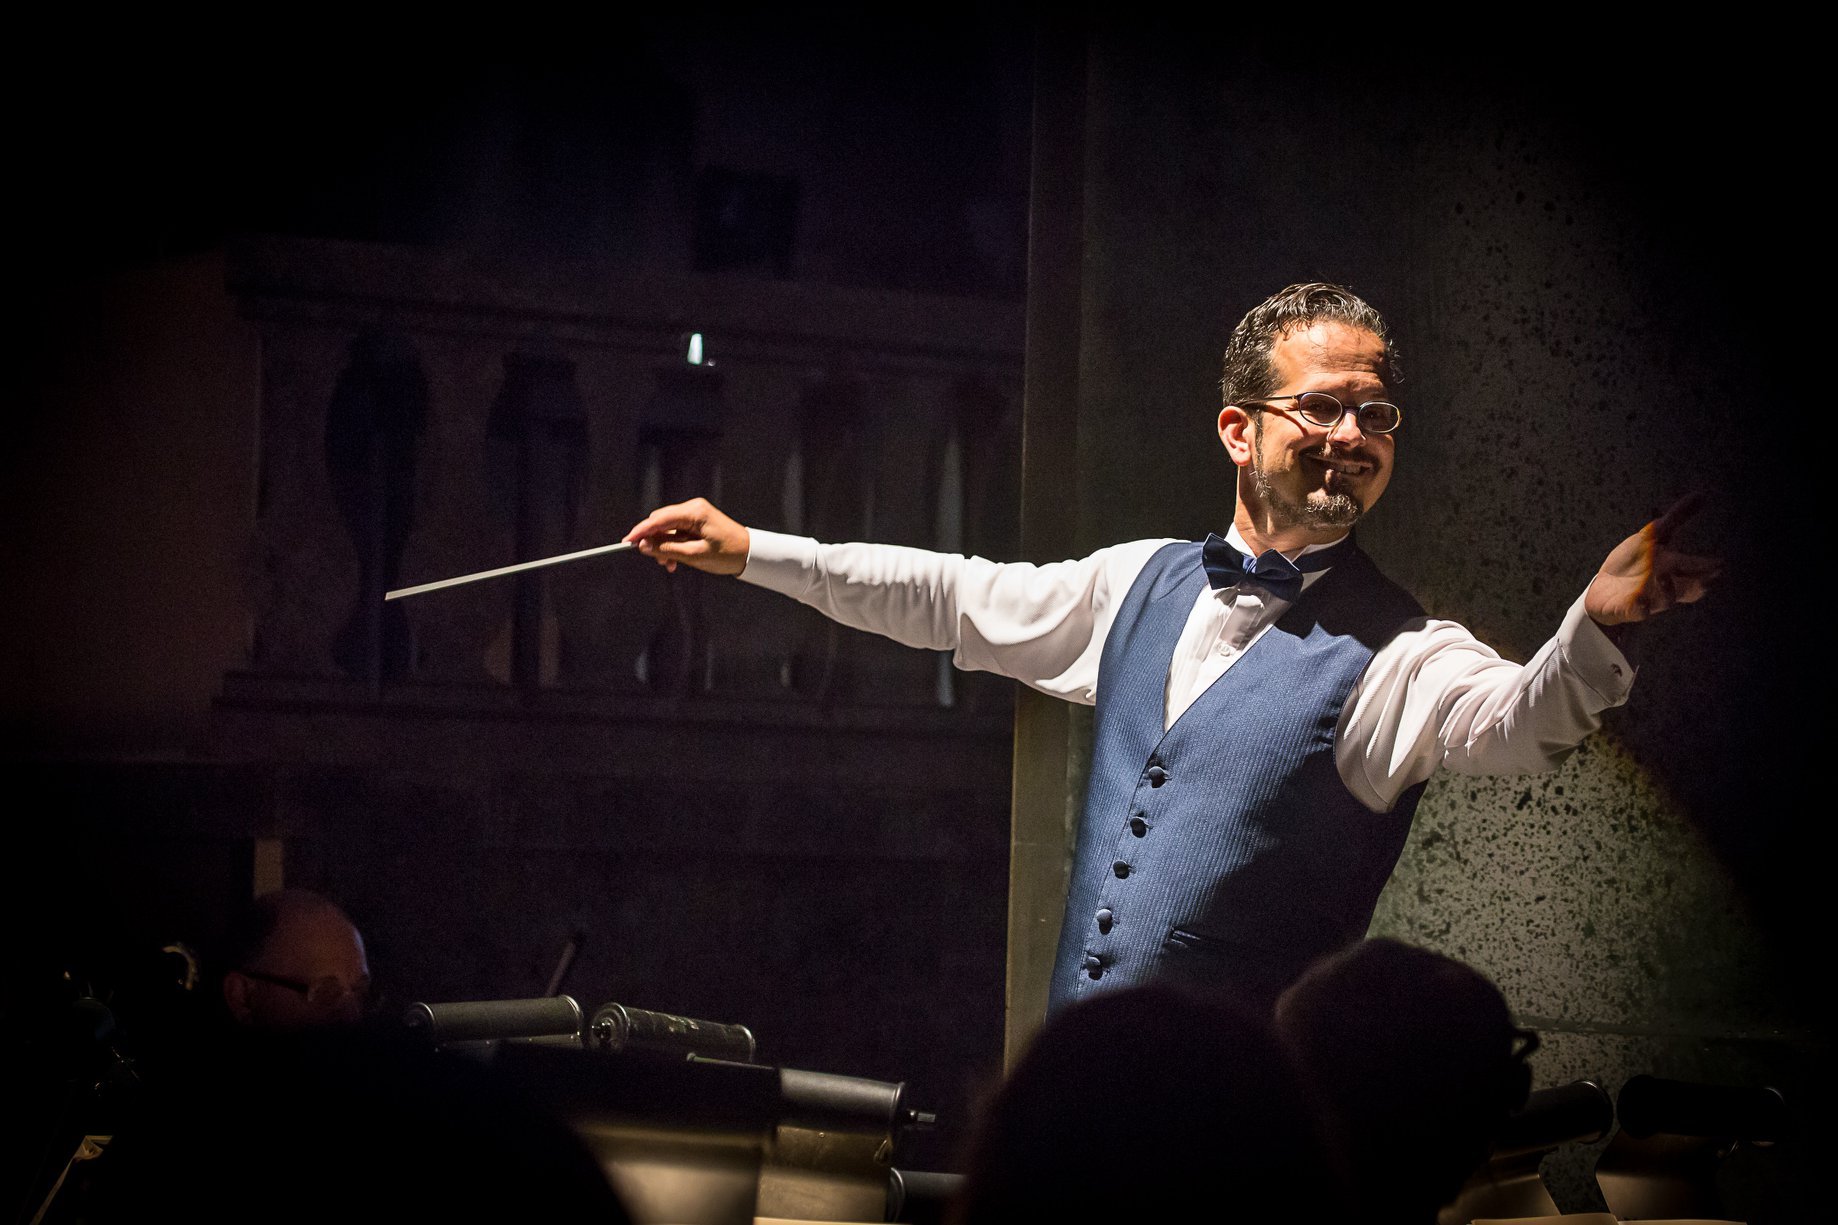 A conductor with a baton and arms outstretched, wearing a blue vest and bow tie, smiles to the camera.